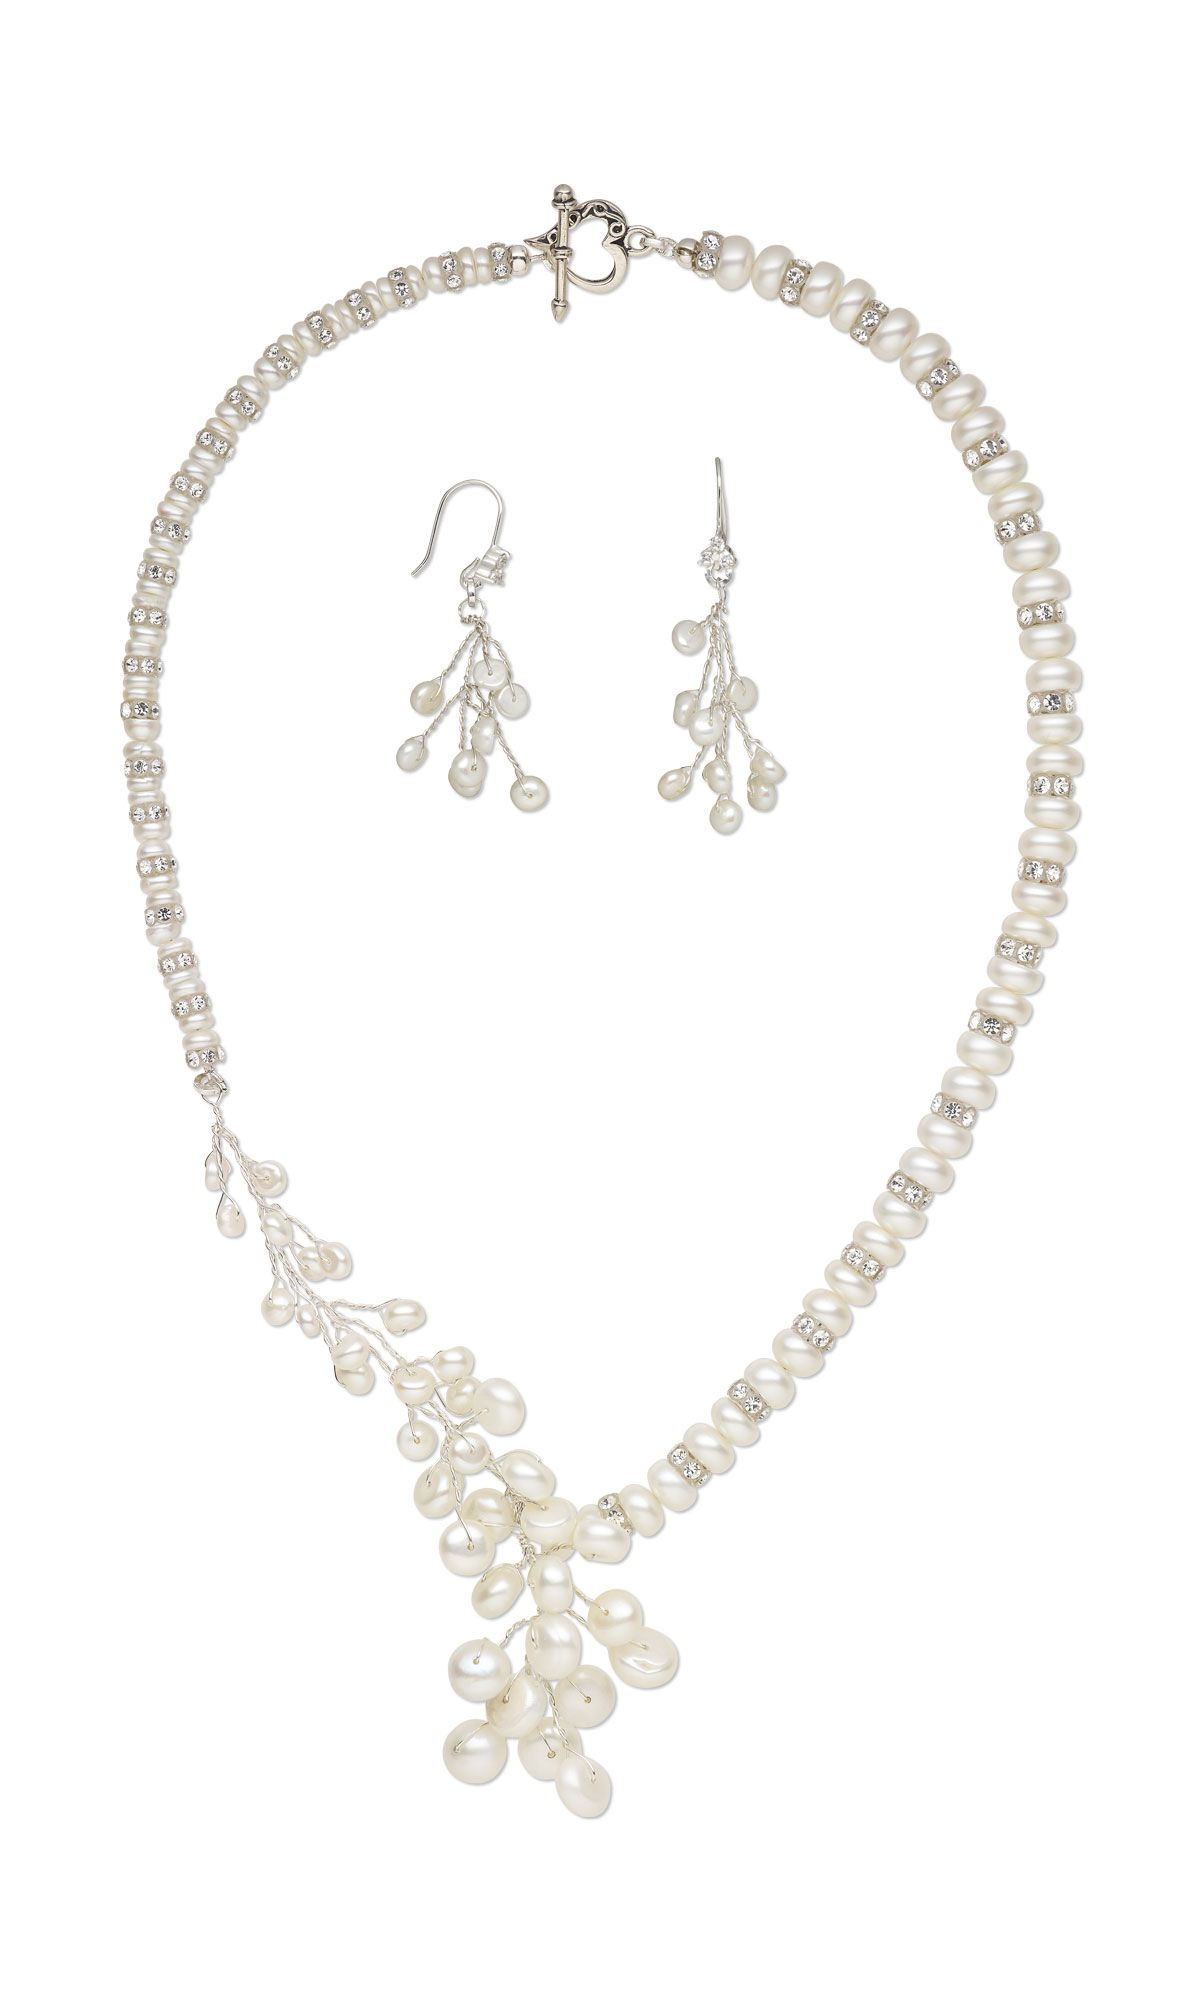 Jewelry Design - Single-Strand Necklace and Earring Set with White Lotus™ Cultured Freshwater Pearls, Swarovski® Crystals and Wirework - Fire Mountain Gems and Beads